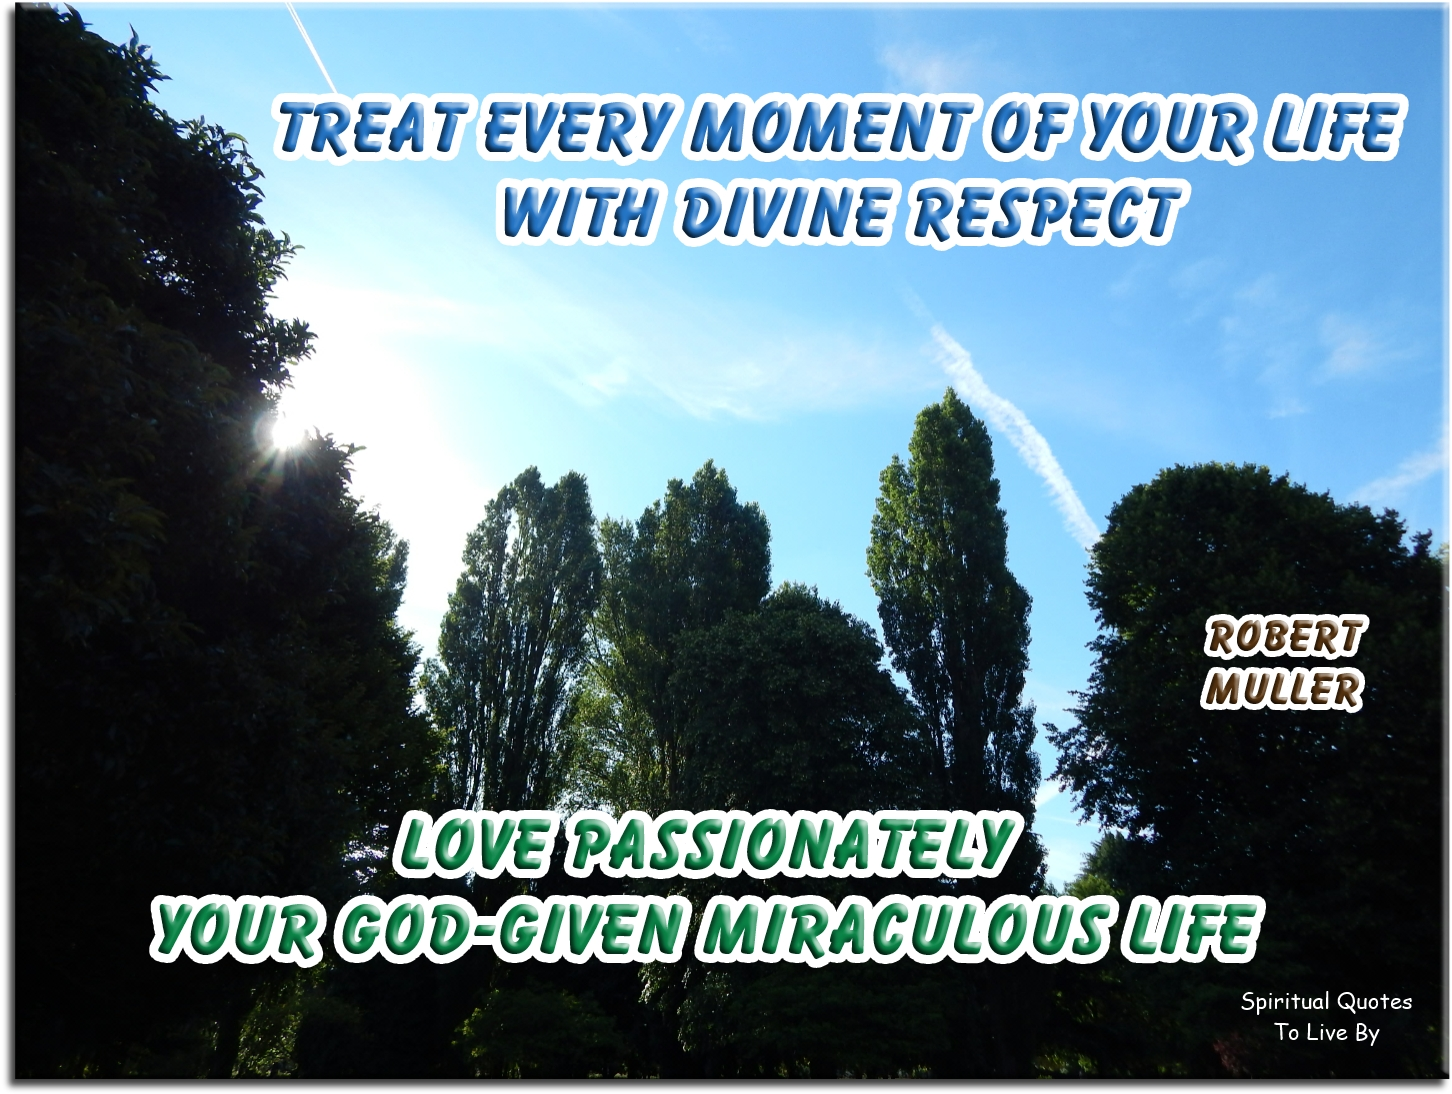 Robert Muller quote: Treat every moment of your life with Divine respect. Love passionately your God-given miraculous life. - Spiritual Quotes To Live By